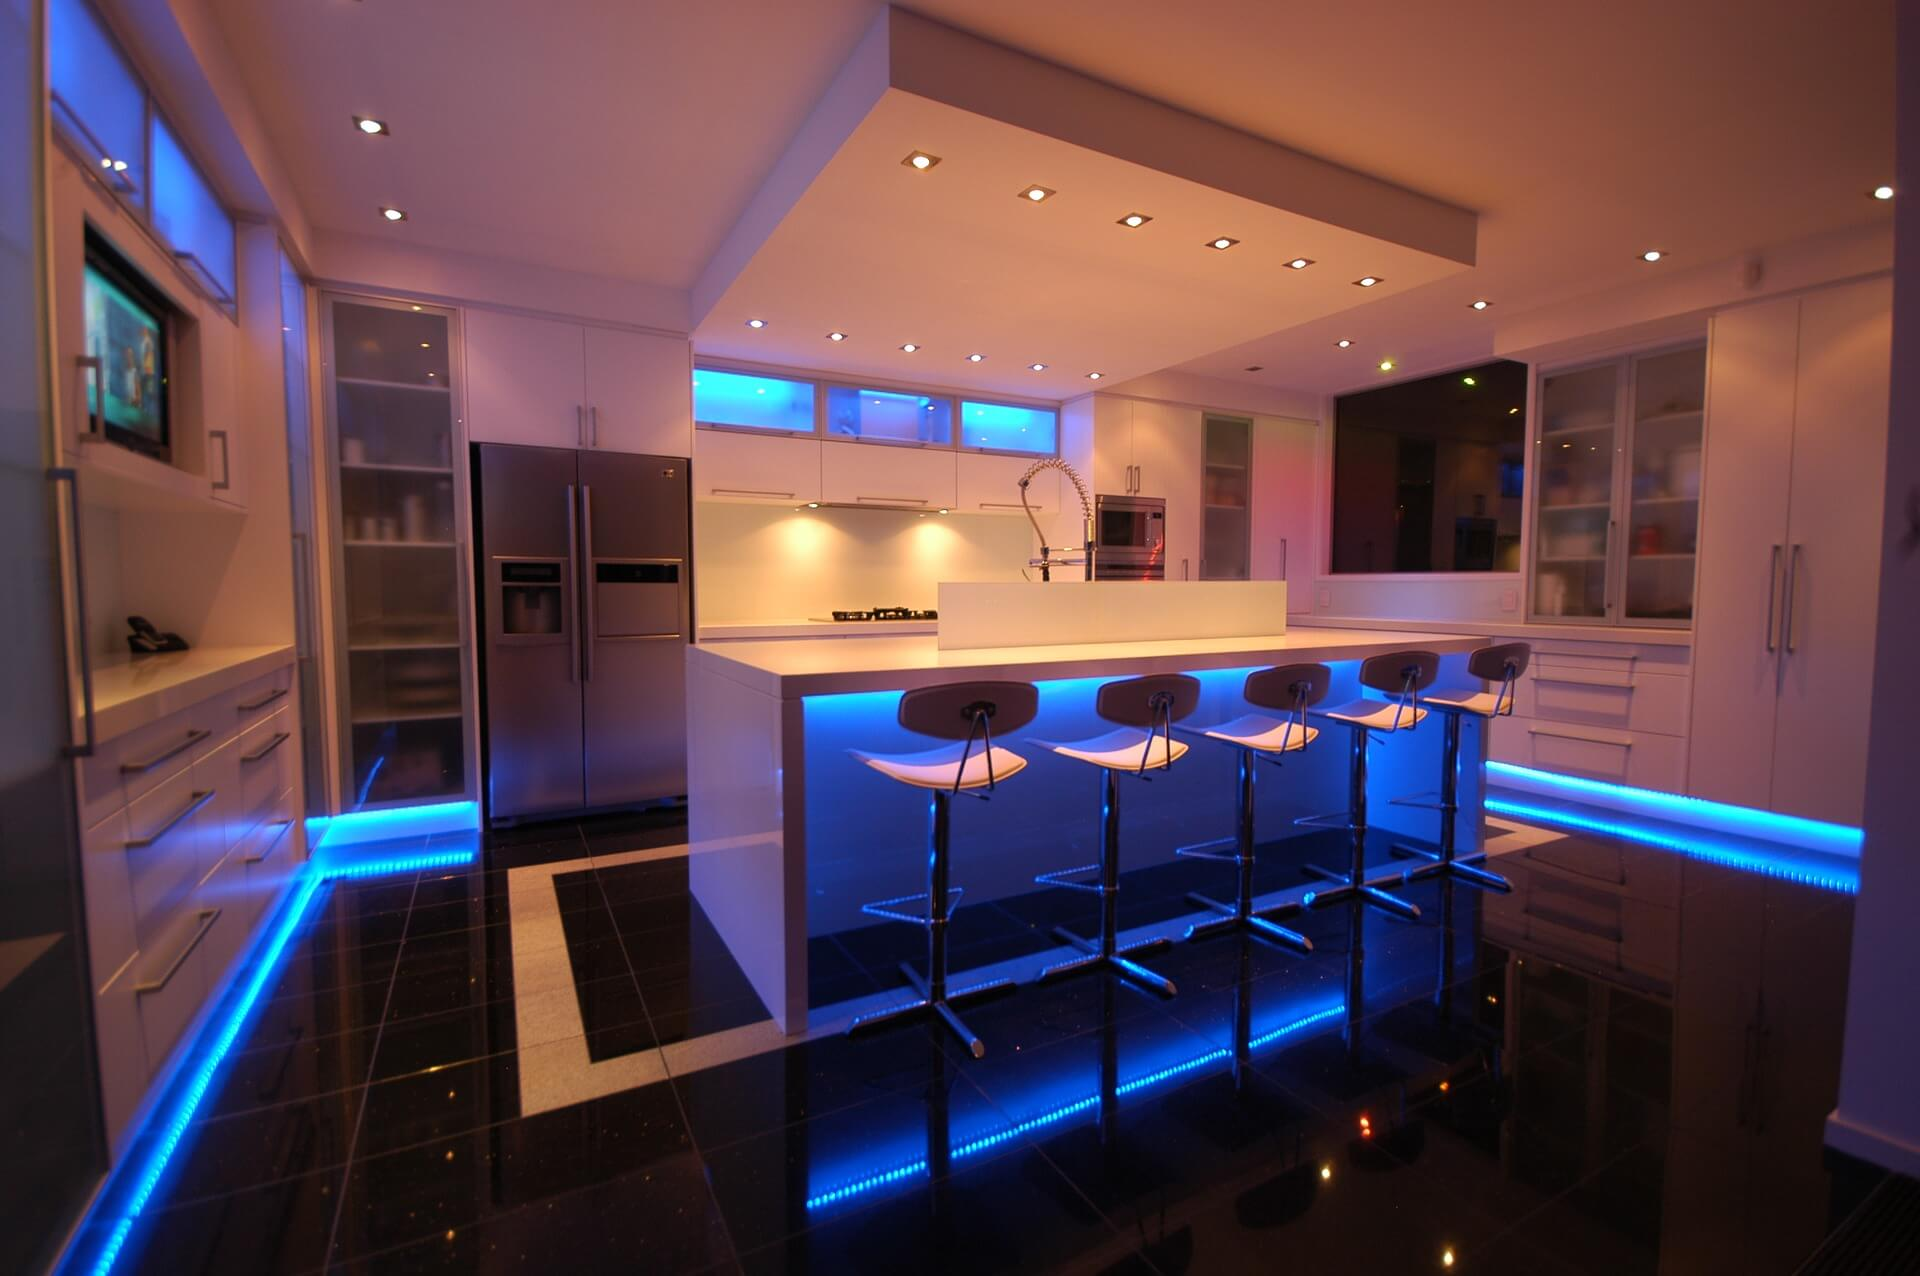 42-SoFlo Kitchen Remodeling & Custom Cabinet Installation - backsplashes, flooring, countertops-From Concept to Creation